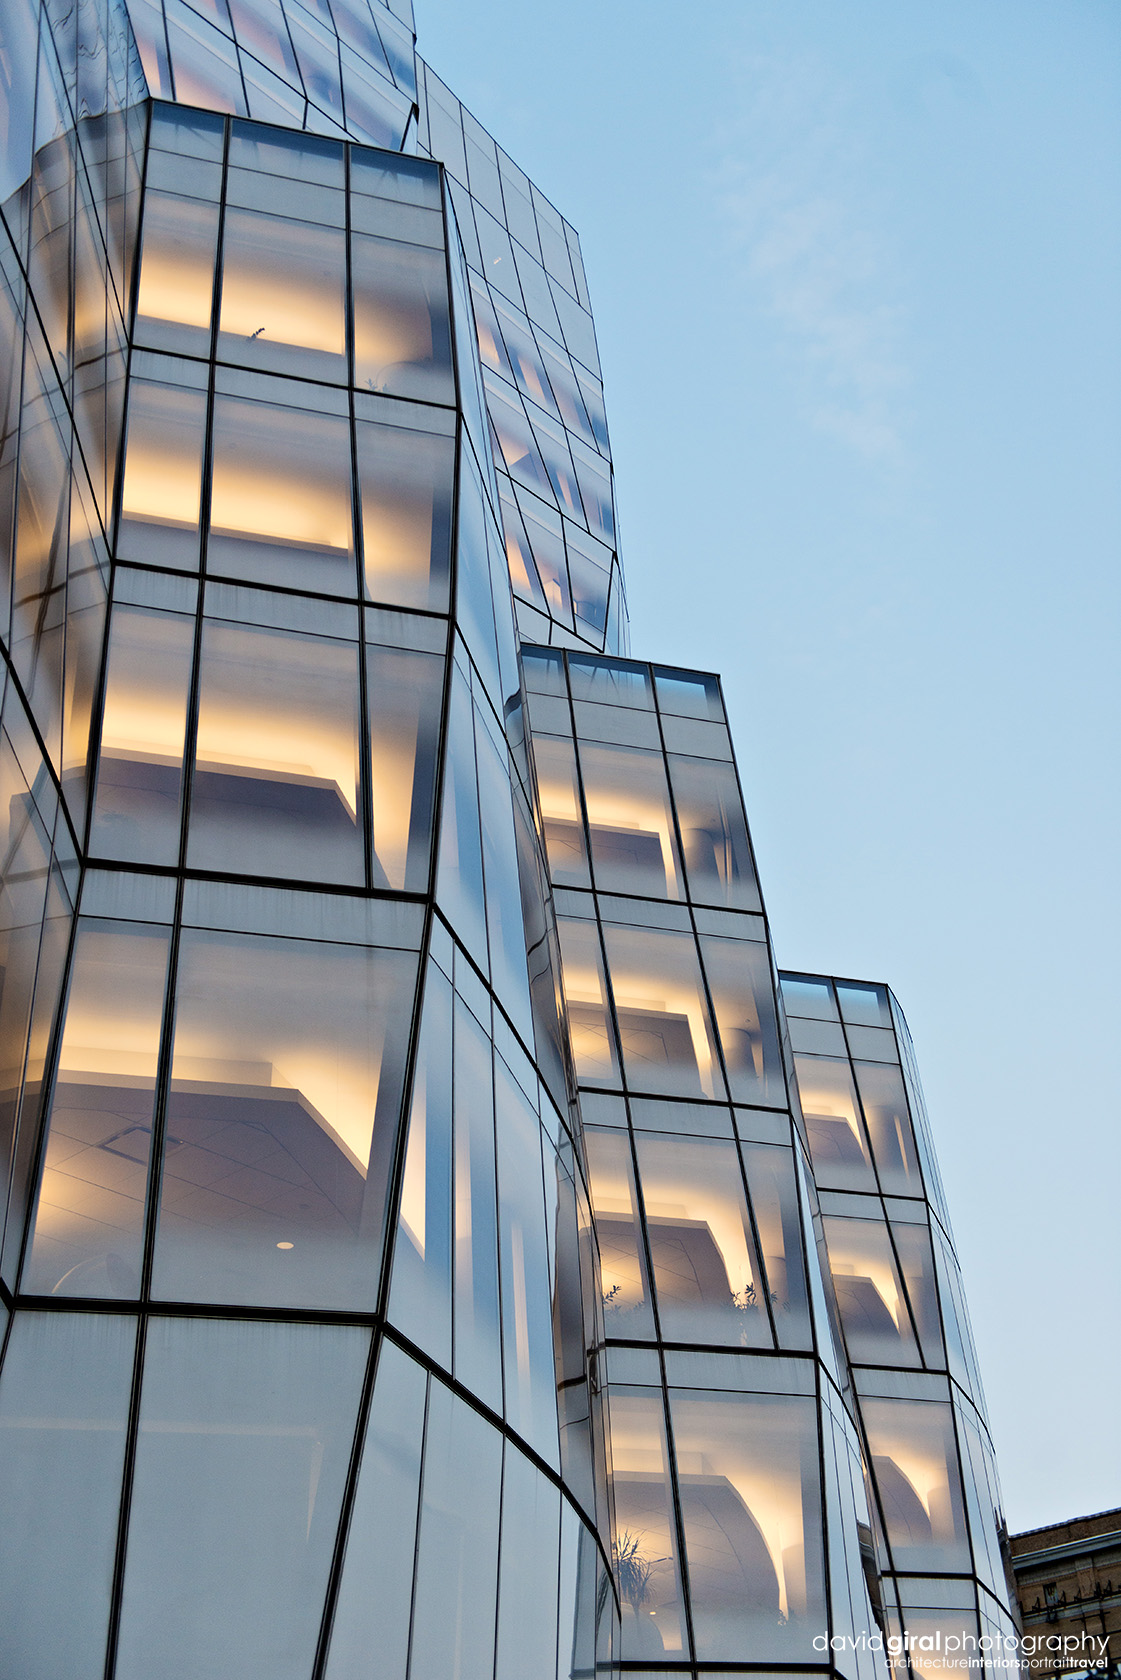 IAC Building detail at dusk by architect Frank Ghery Nikon D800 + Nikkor 24-70mm F/2.8 GI @ 45mm | ISO400 - 1/400s - F/2.8